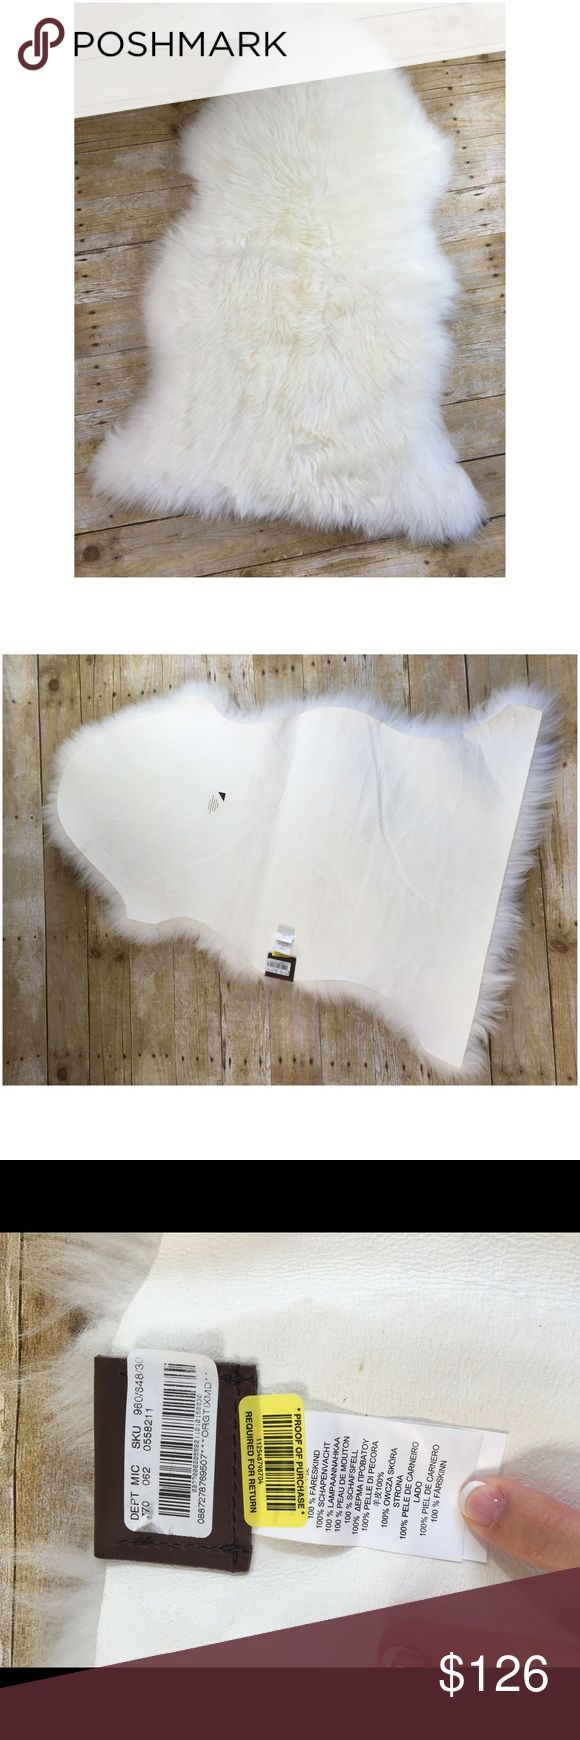 """UGG Australia Home Sheepskin Rug Natural Beige Top of the line quality sheepskin rug. The fur origin is New Zealand while the product was made in China. If you're going to buy a sheepskin rug, might as well buy it from the manufacturer of the best selling sheepskin boots! This rug is seriously luxurious and adds richness to any room. I place mine at the foot of the bed, in the living room, and draped over a nice chair.   Condition: New with tags  Size: 2"""" by 3"""" (Small)  Material: 100%…"""